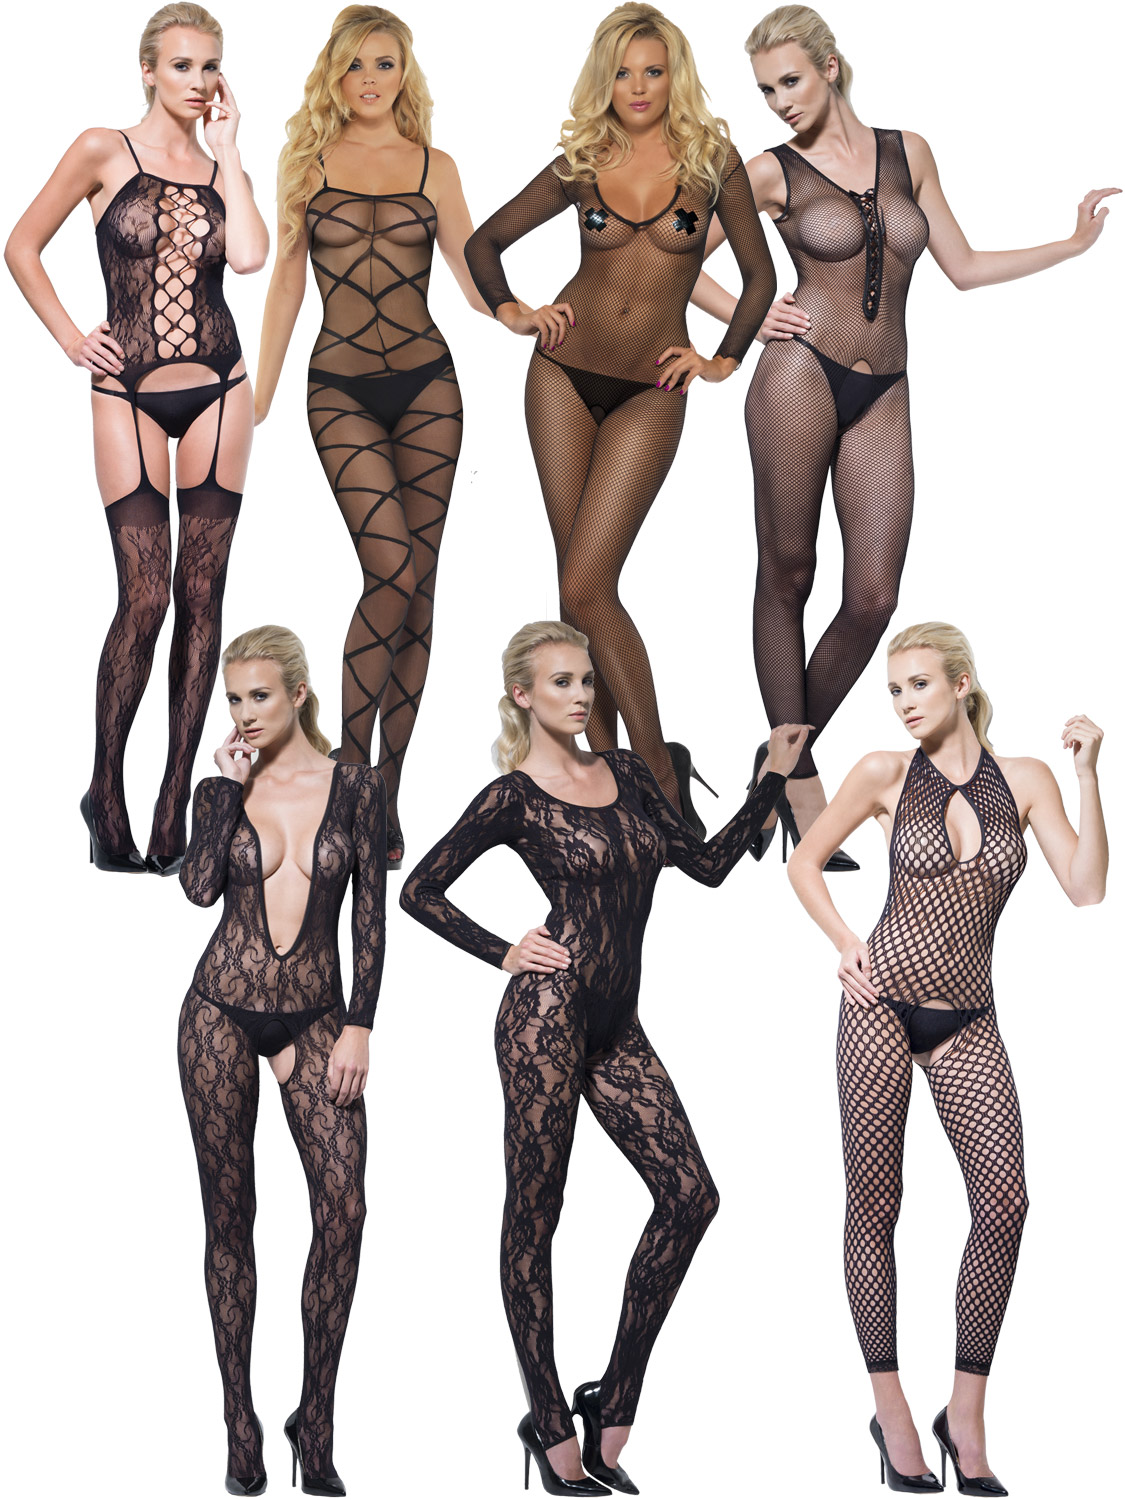 2c62a3e3100 Details about Ladies Sexy Body Stocking Adults Fashion Bodysuit Lingerie  Fancy Dress Womens